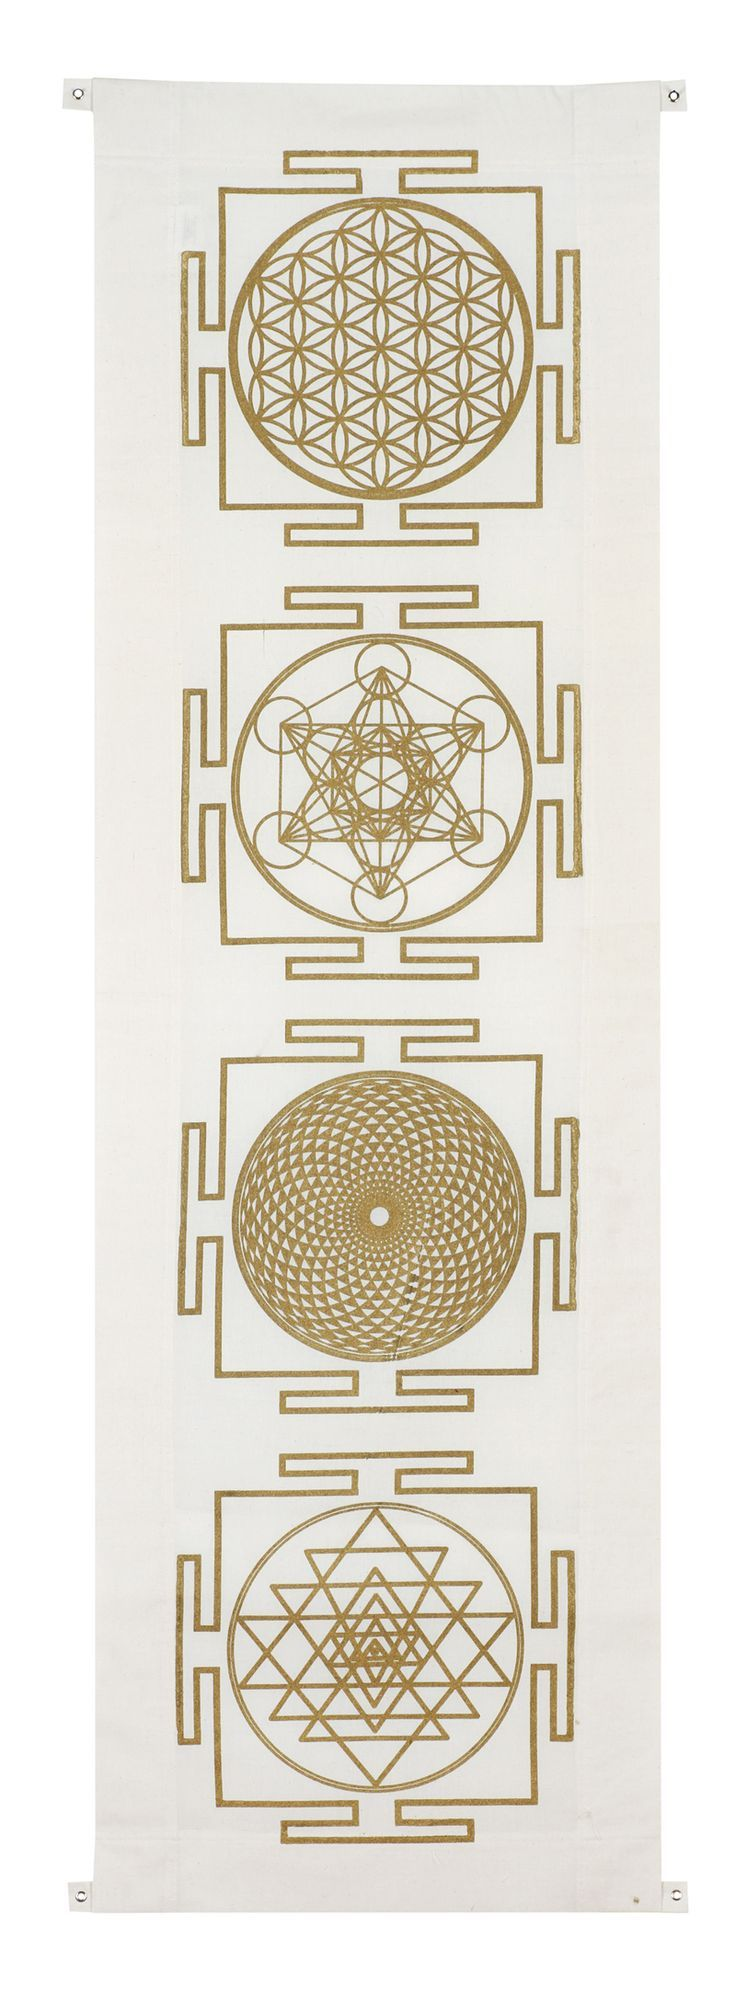 Four yantra banner includes the symbols: flower of life, metatrons cube, sahashara and sri yantra.: